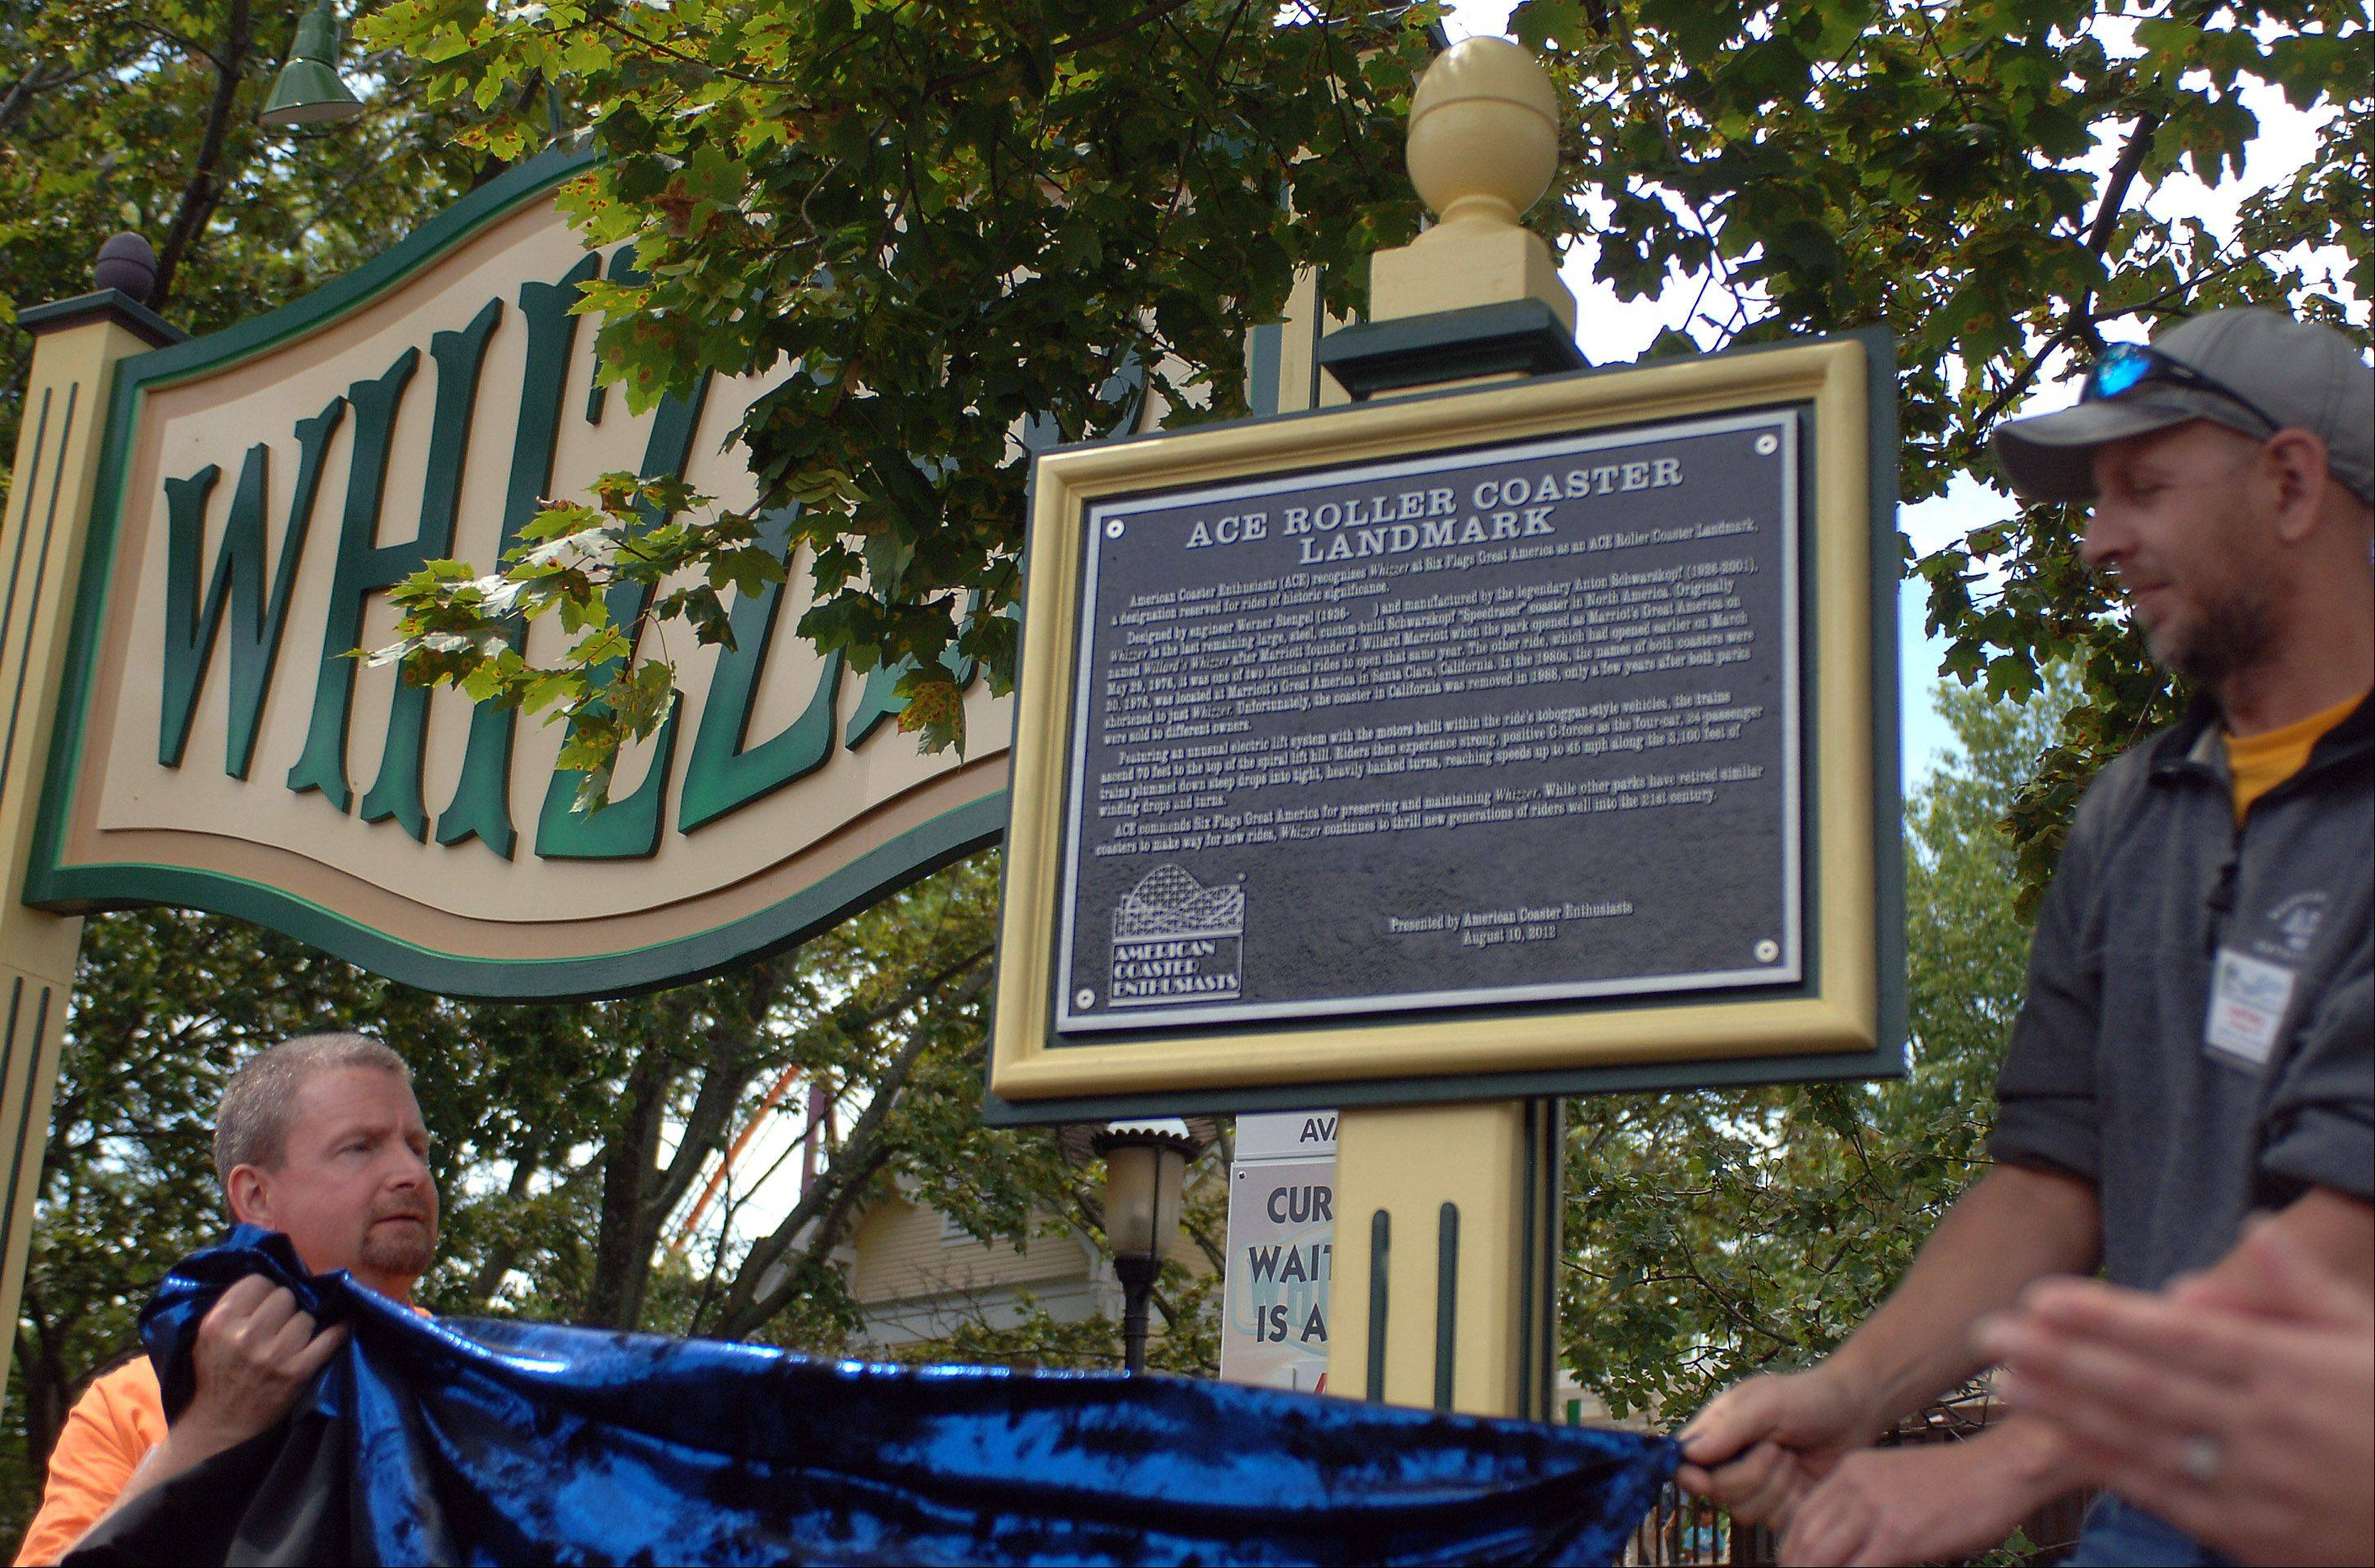 American Coaster Enthusiasts representatives Jeff Peters, of Salem, Wis., left, and Scott Heck, of Sheboygan, Wis., unveil the landmark plaque Friday near the Whizzer's entrance at Six Flags Great America in Gurnee.